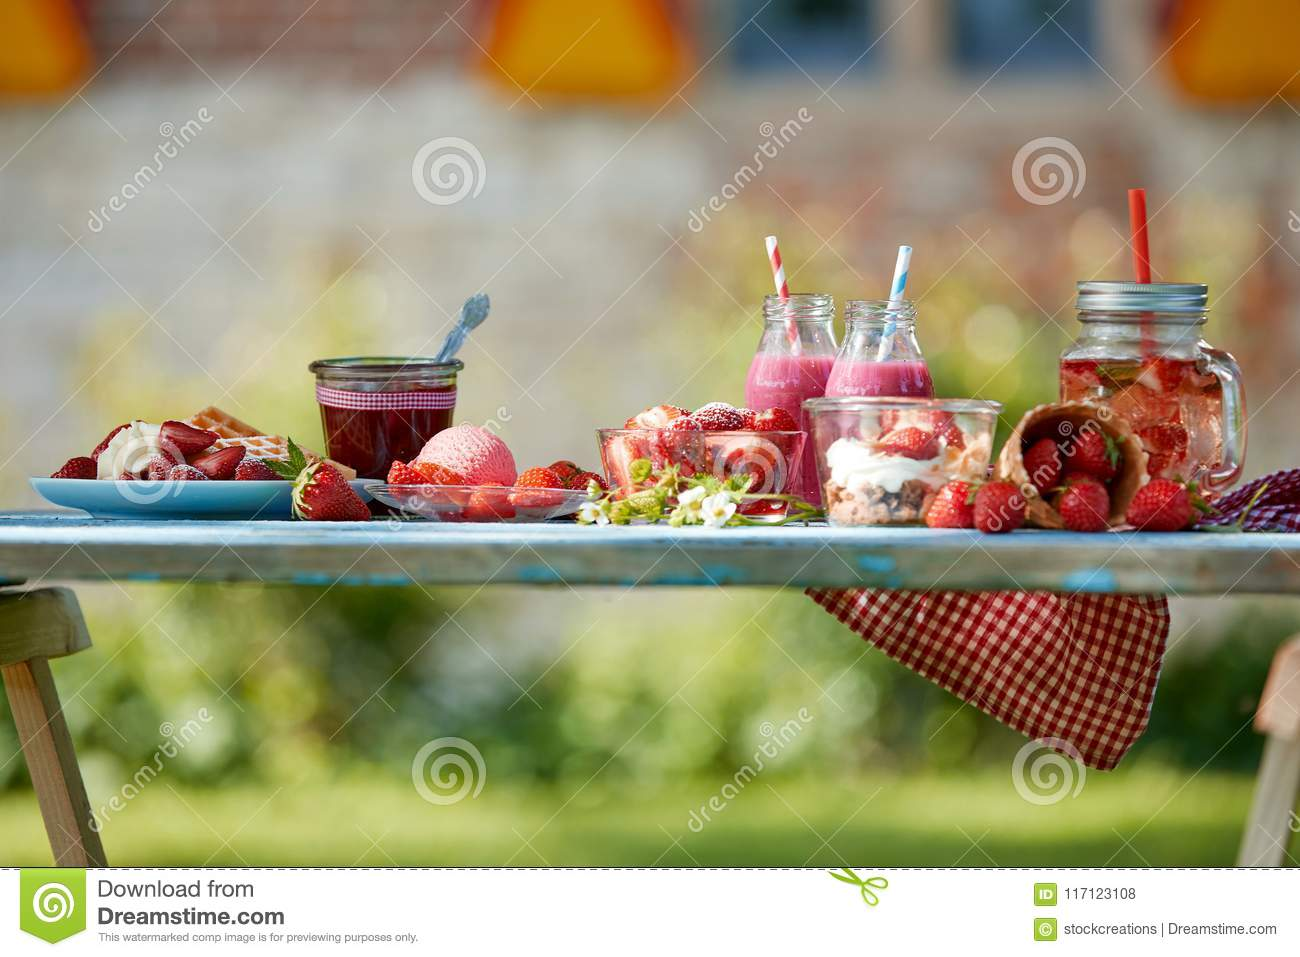 Colourful summer strawberries desserts picnic table